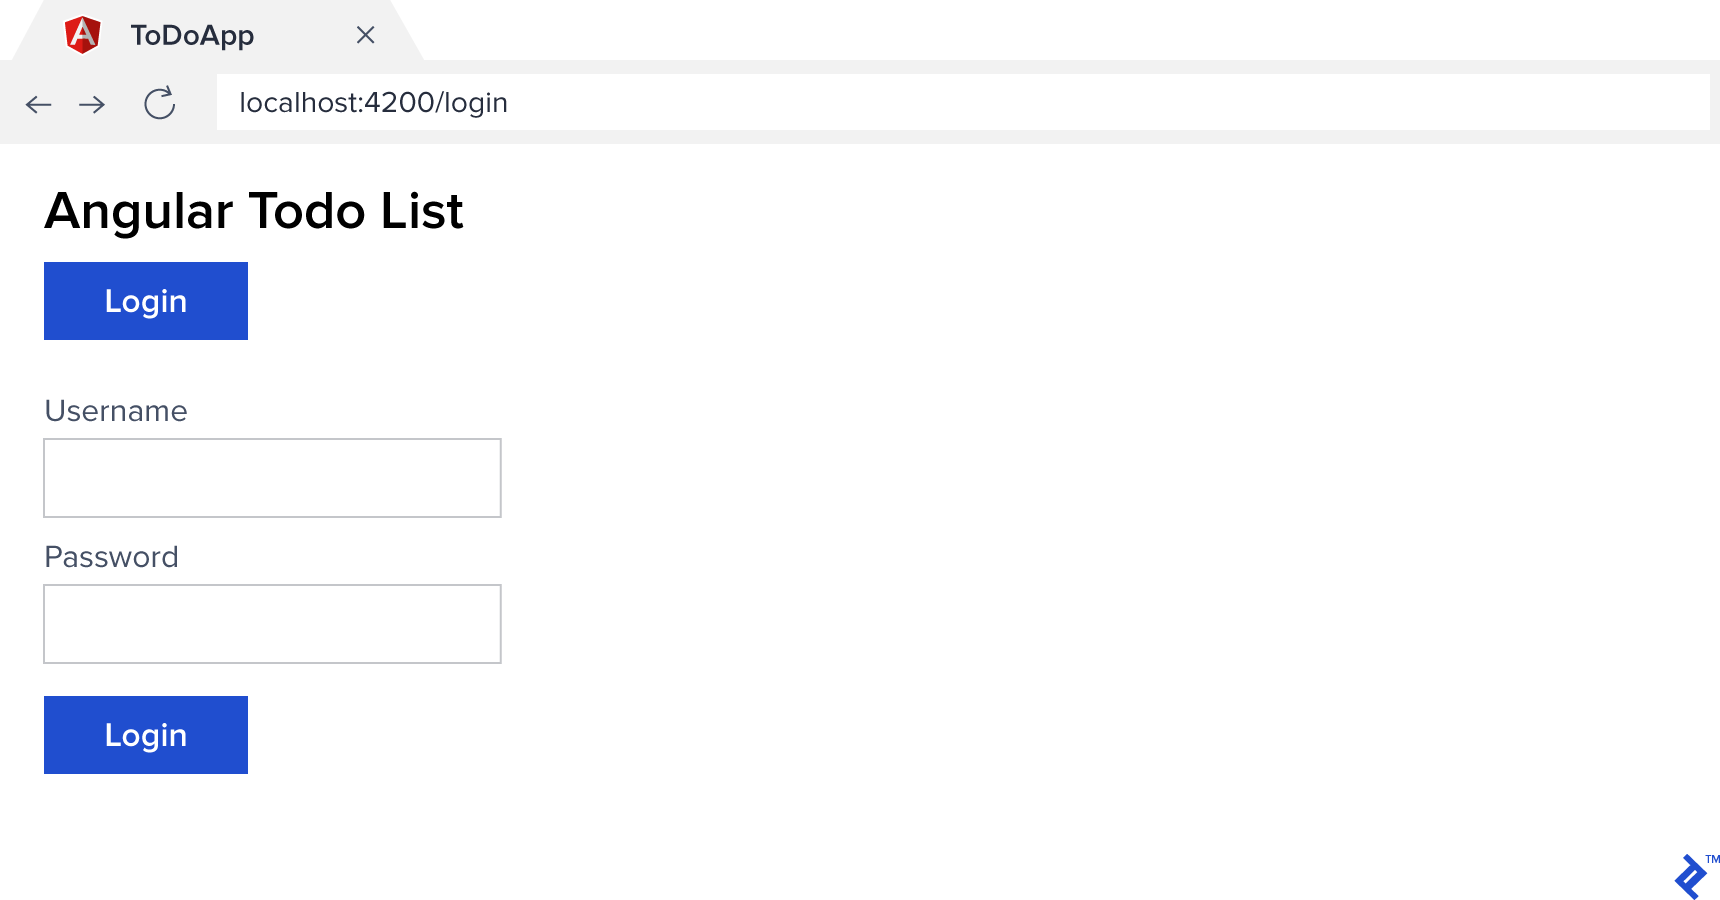 The login screen of our sample Angular Todo List app.